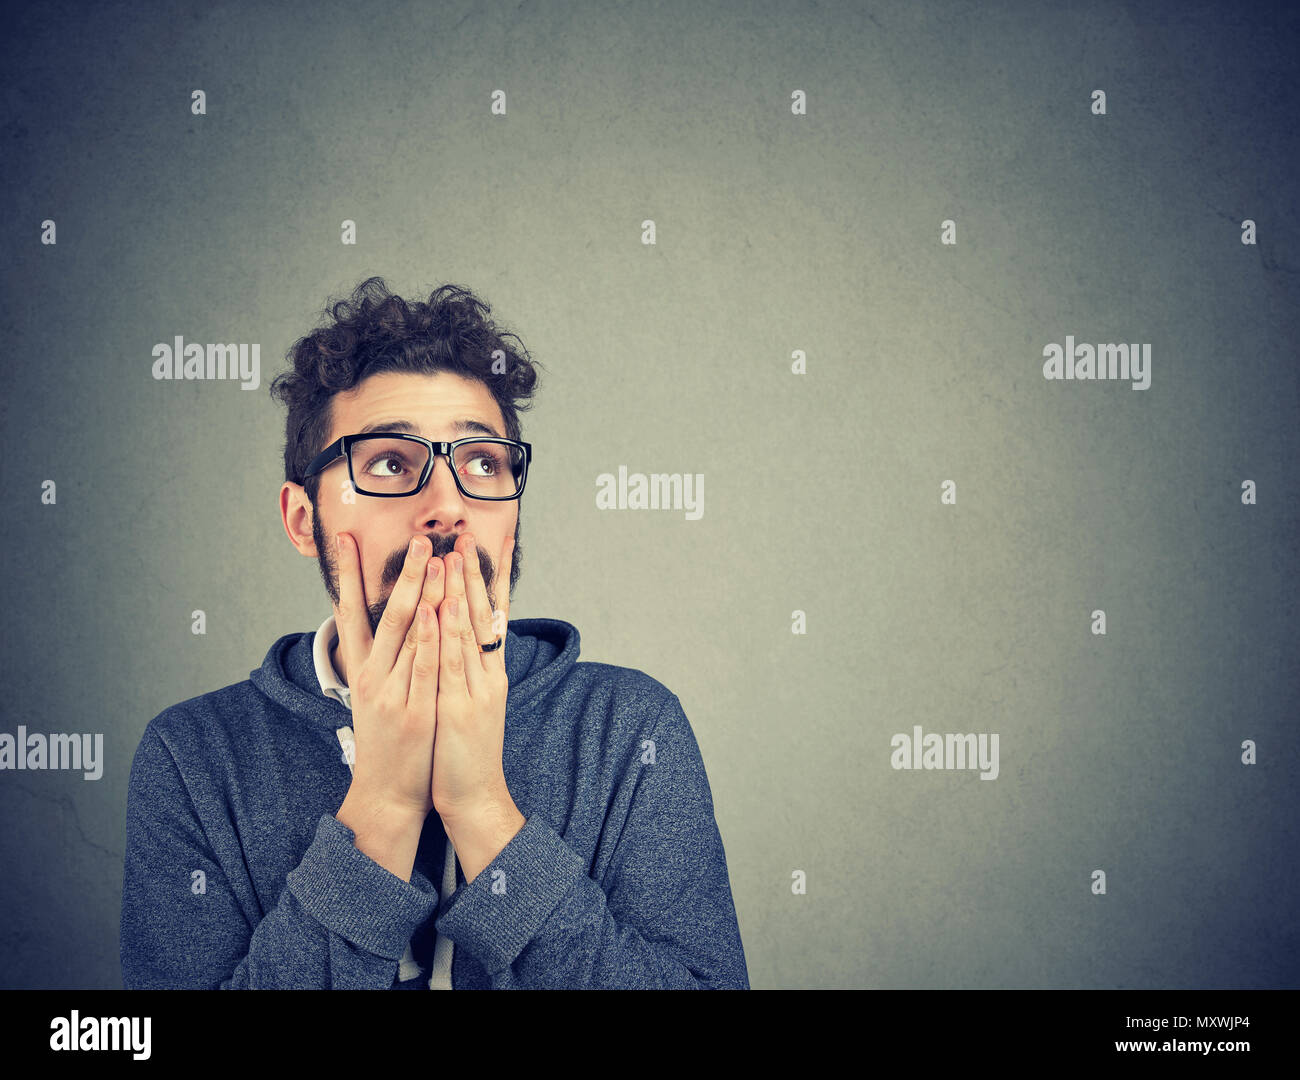 Handsome bearded man in glasses holding hands on mouth in fear and despair looking away. - Stock Image